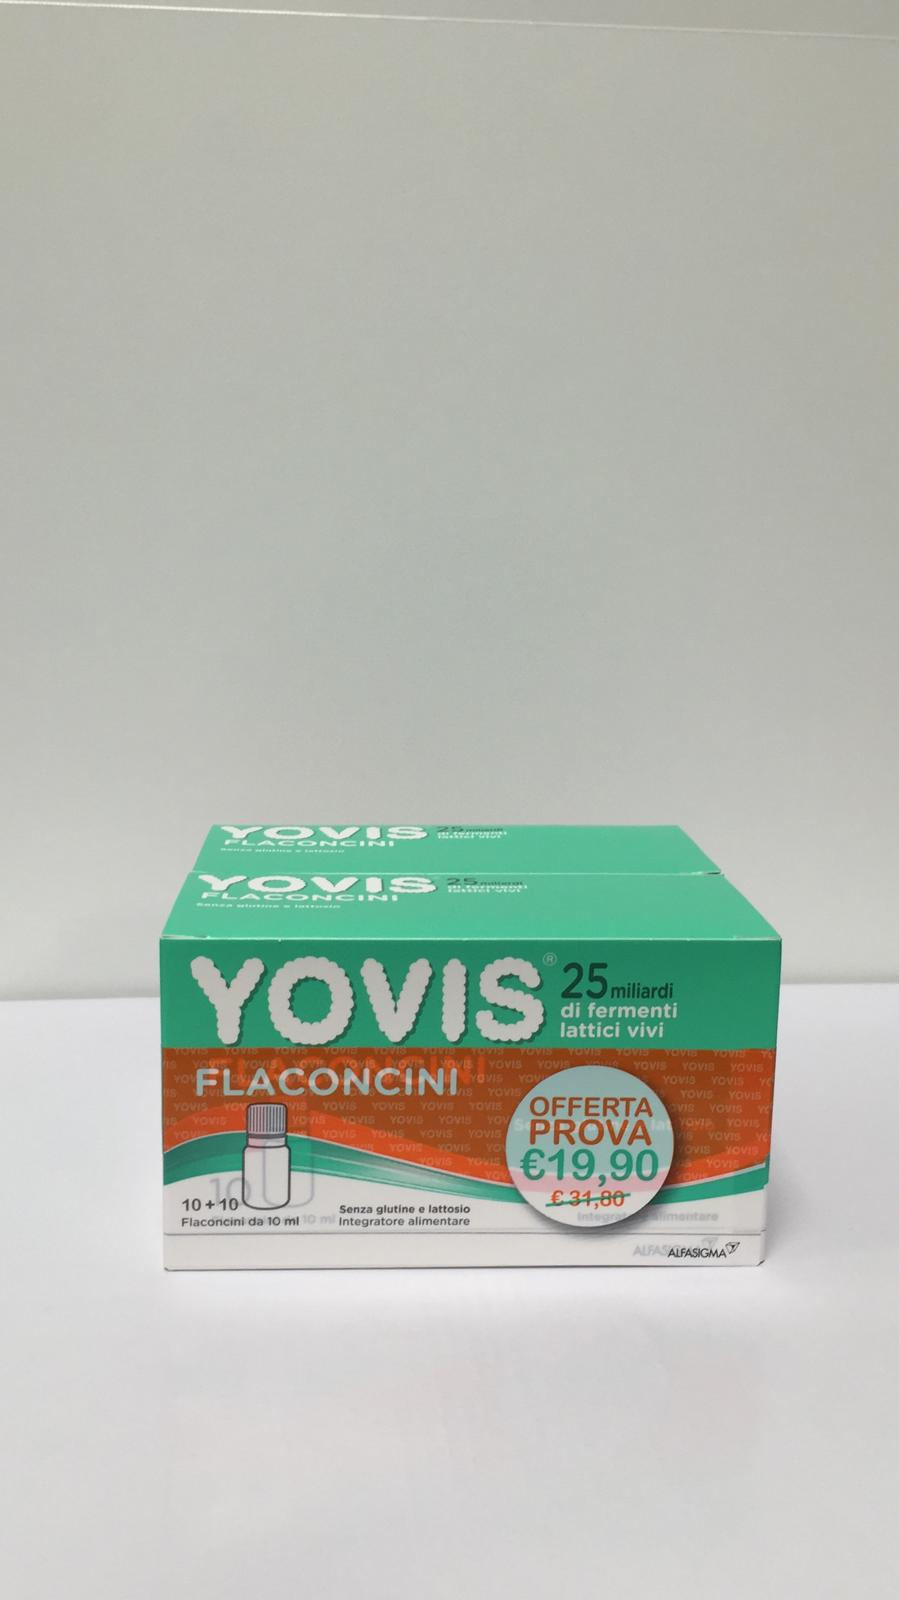 Yovis 20 Flaconcini da 10ml 2 Confezioni - Sempredisponibile.it